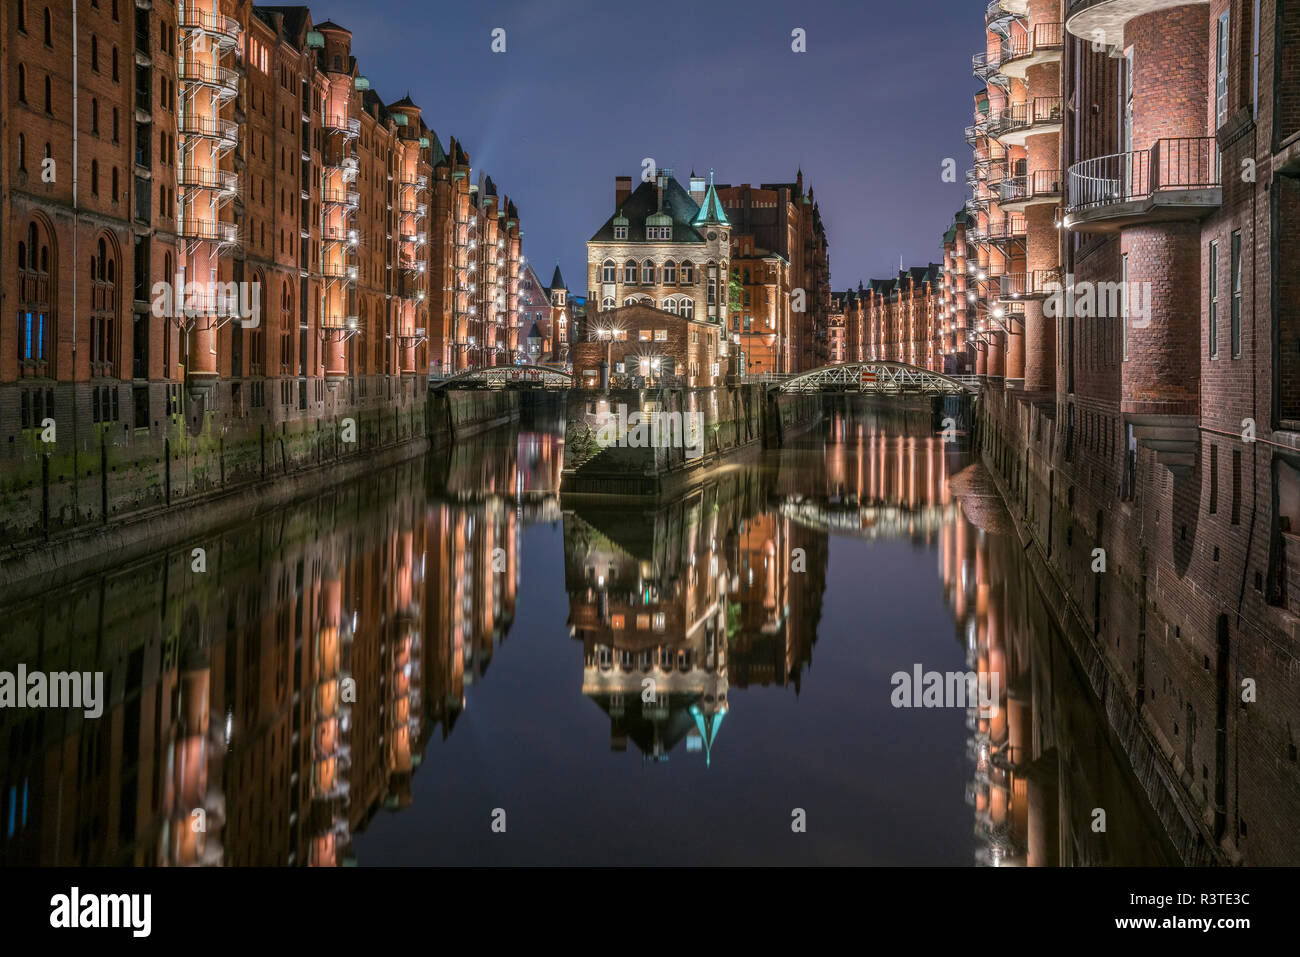 Germany, Hamburg, Speicherstadt, lighted old buildings with Elbe Philharmonic Hall in the background Stock Photo